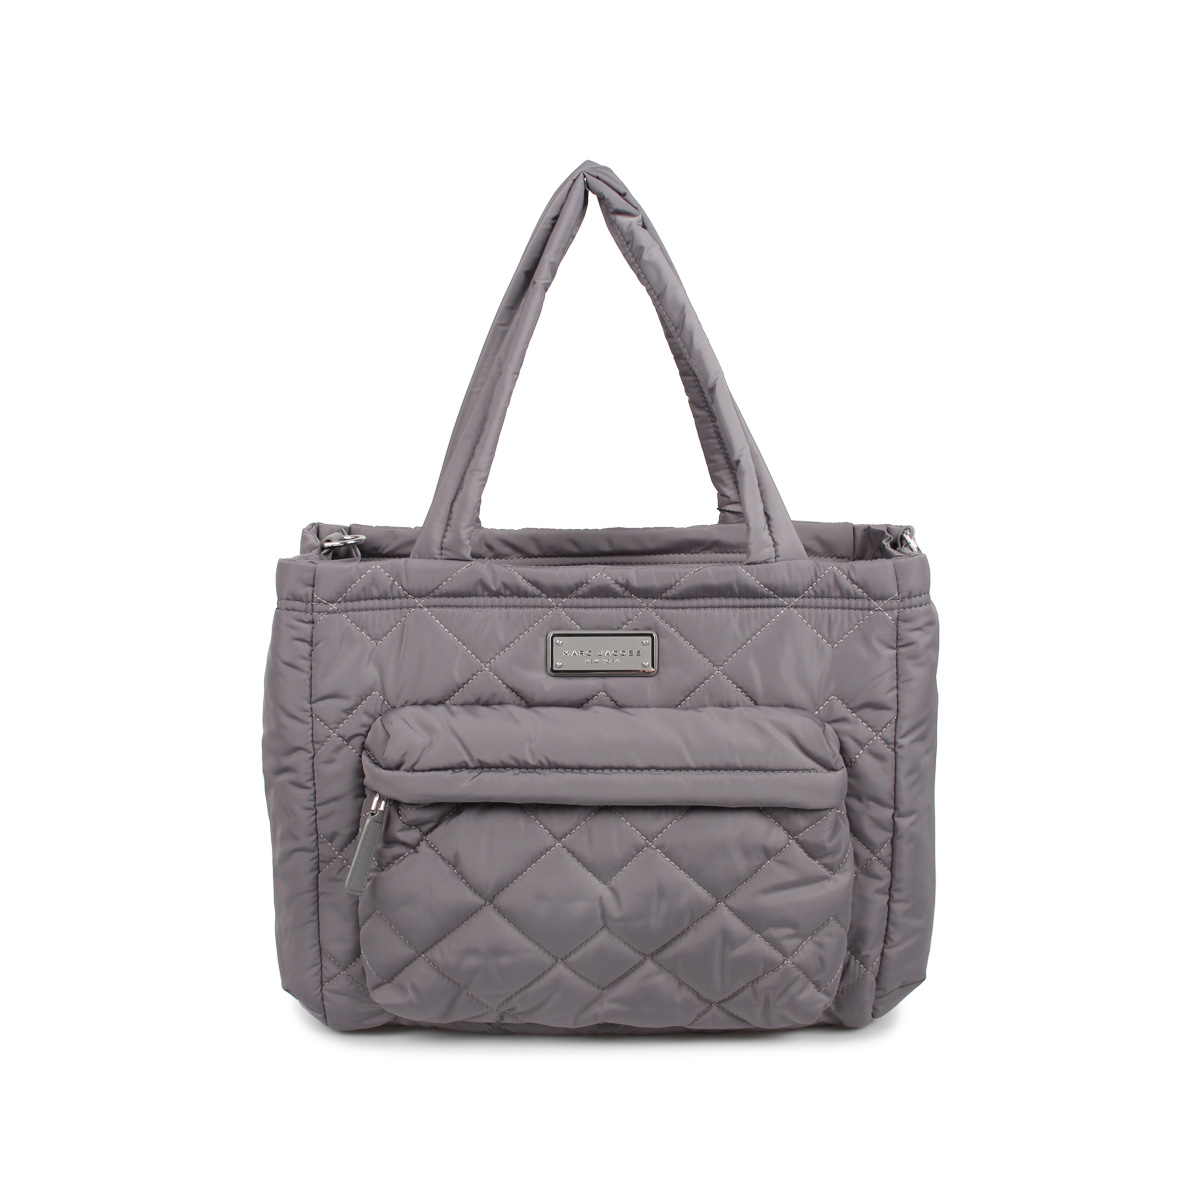 MARC JACOBS QUILTED TOTE マークジェイコブス バッグ トートバッグ ショルダー レディース グレー M0011380-097